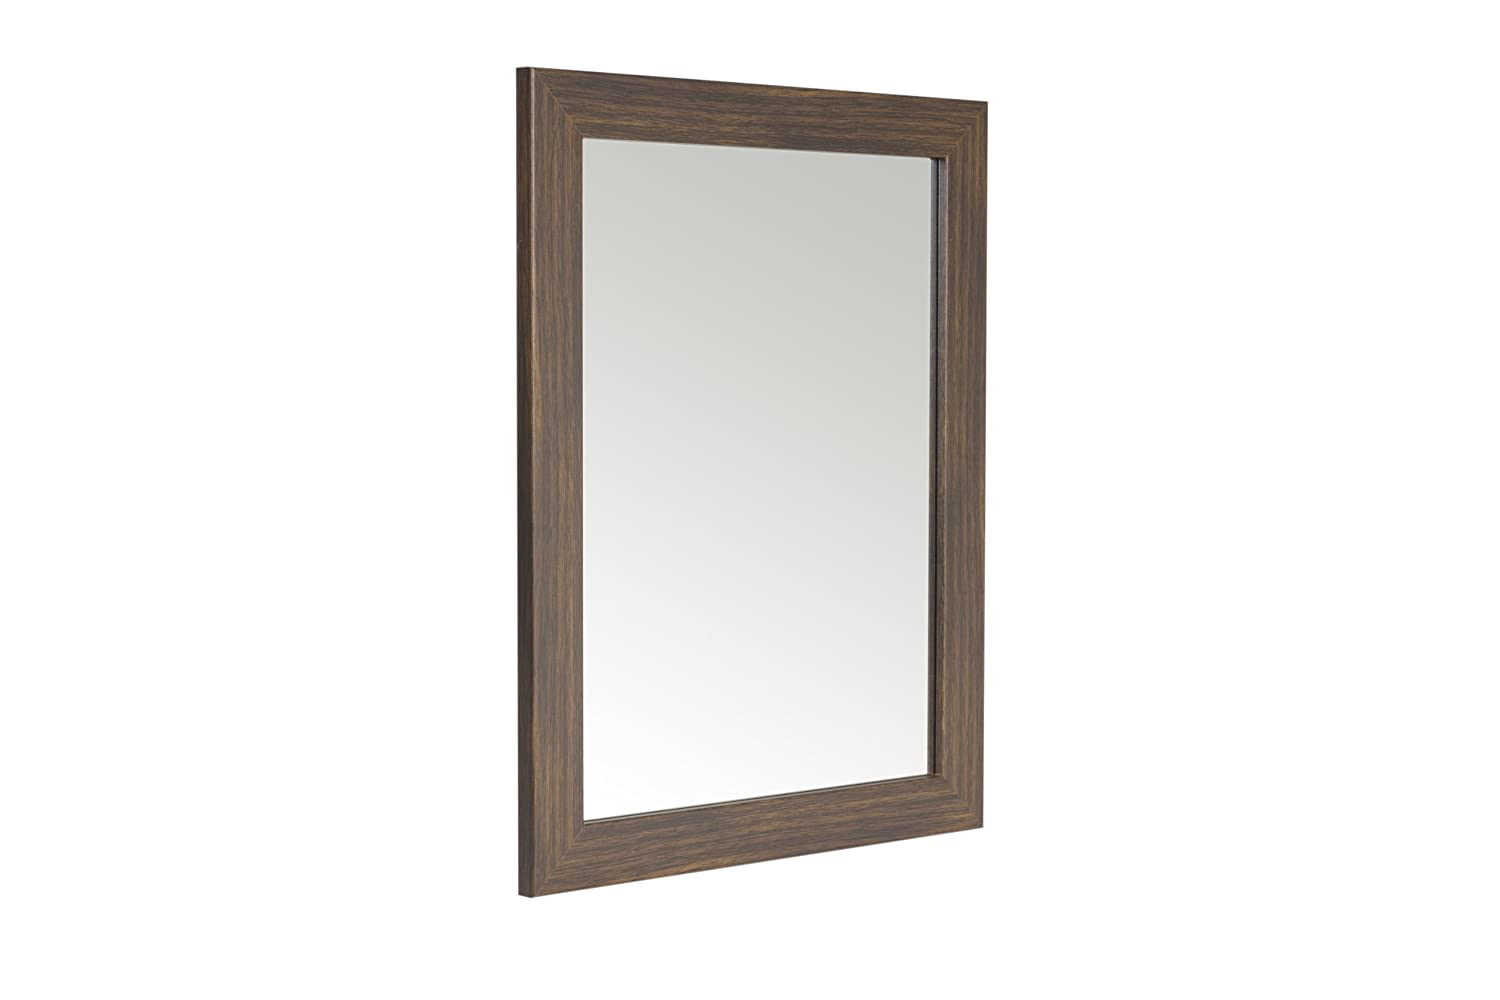 48 x 58cm Walnut Effect Framed Mirror with Wall Hanging Fixings